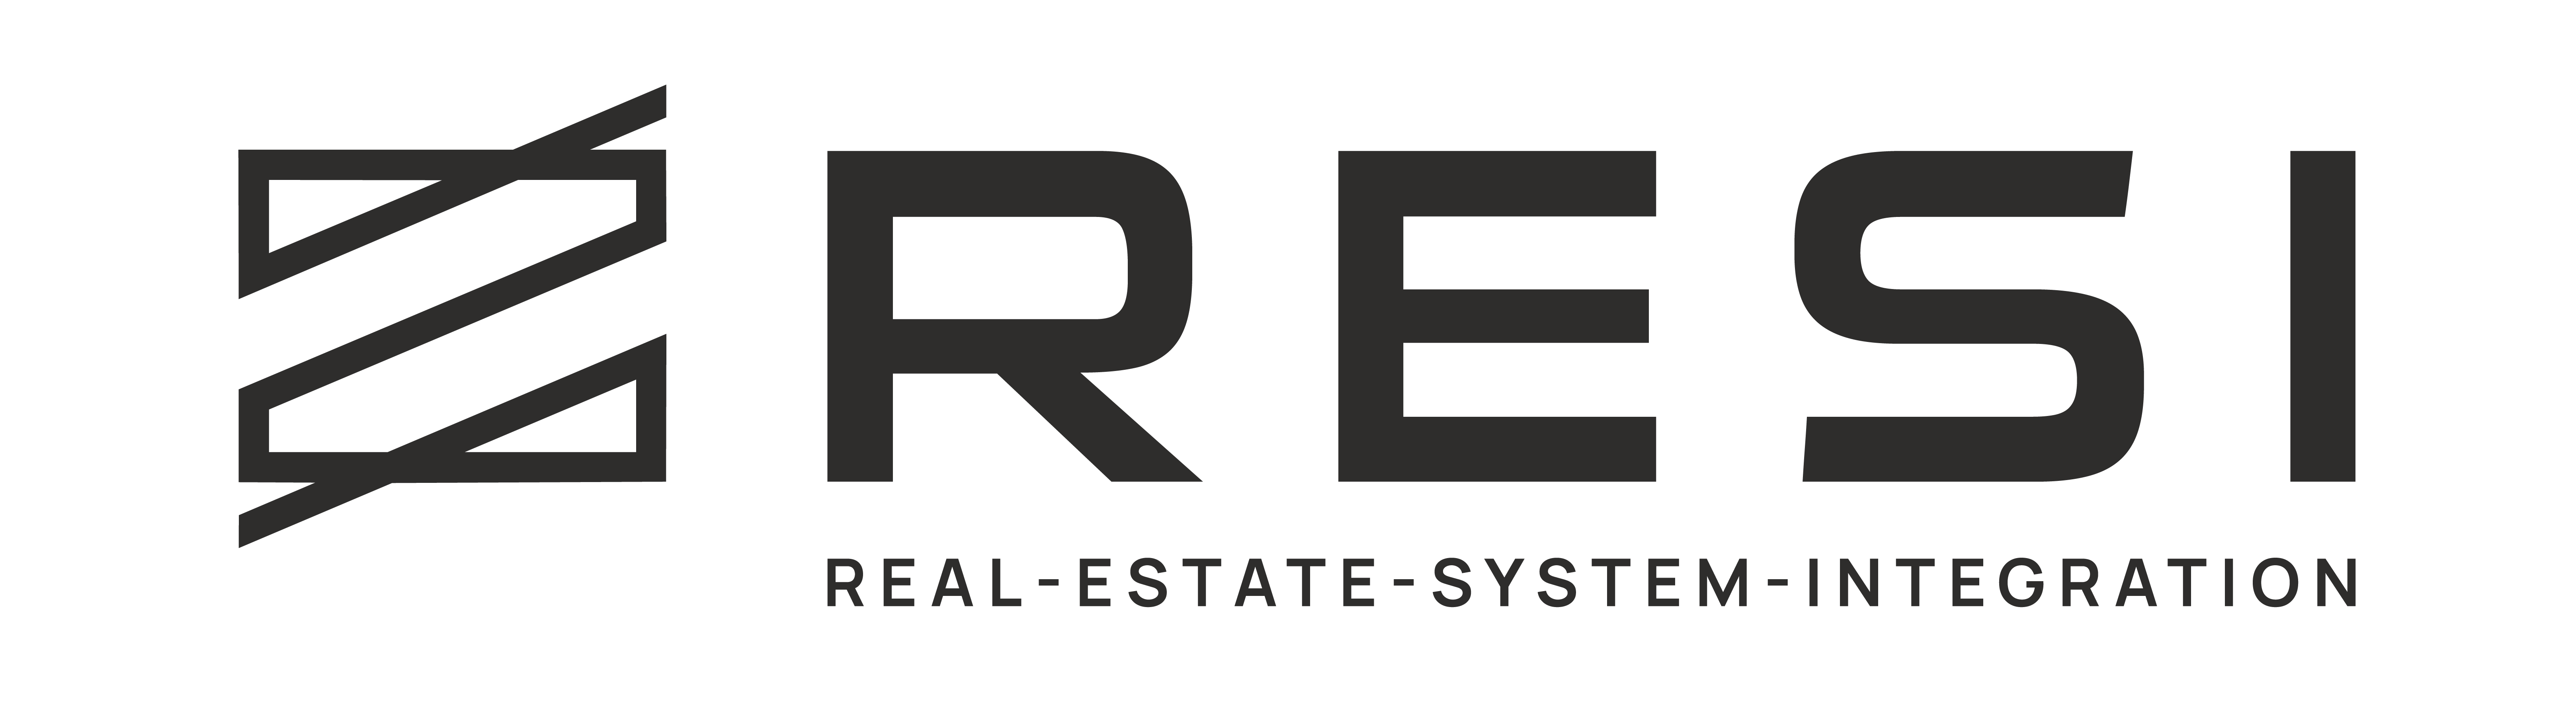 resi-display-logo